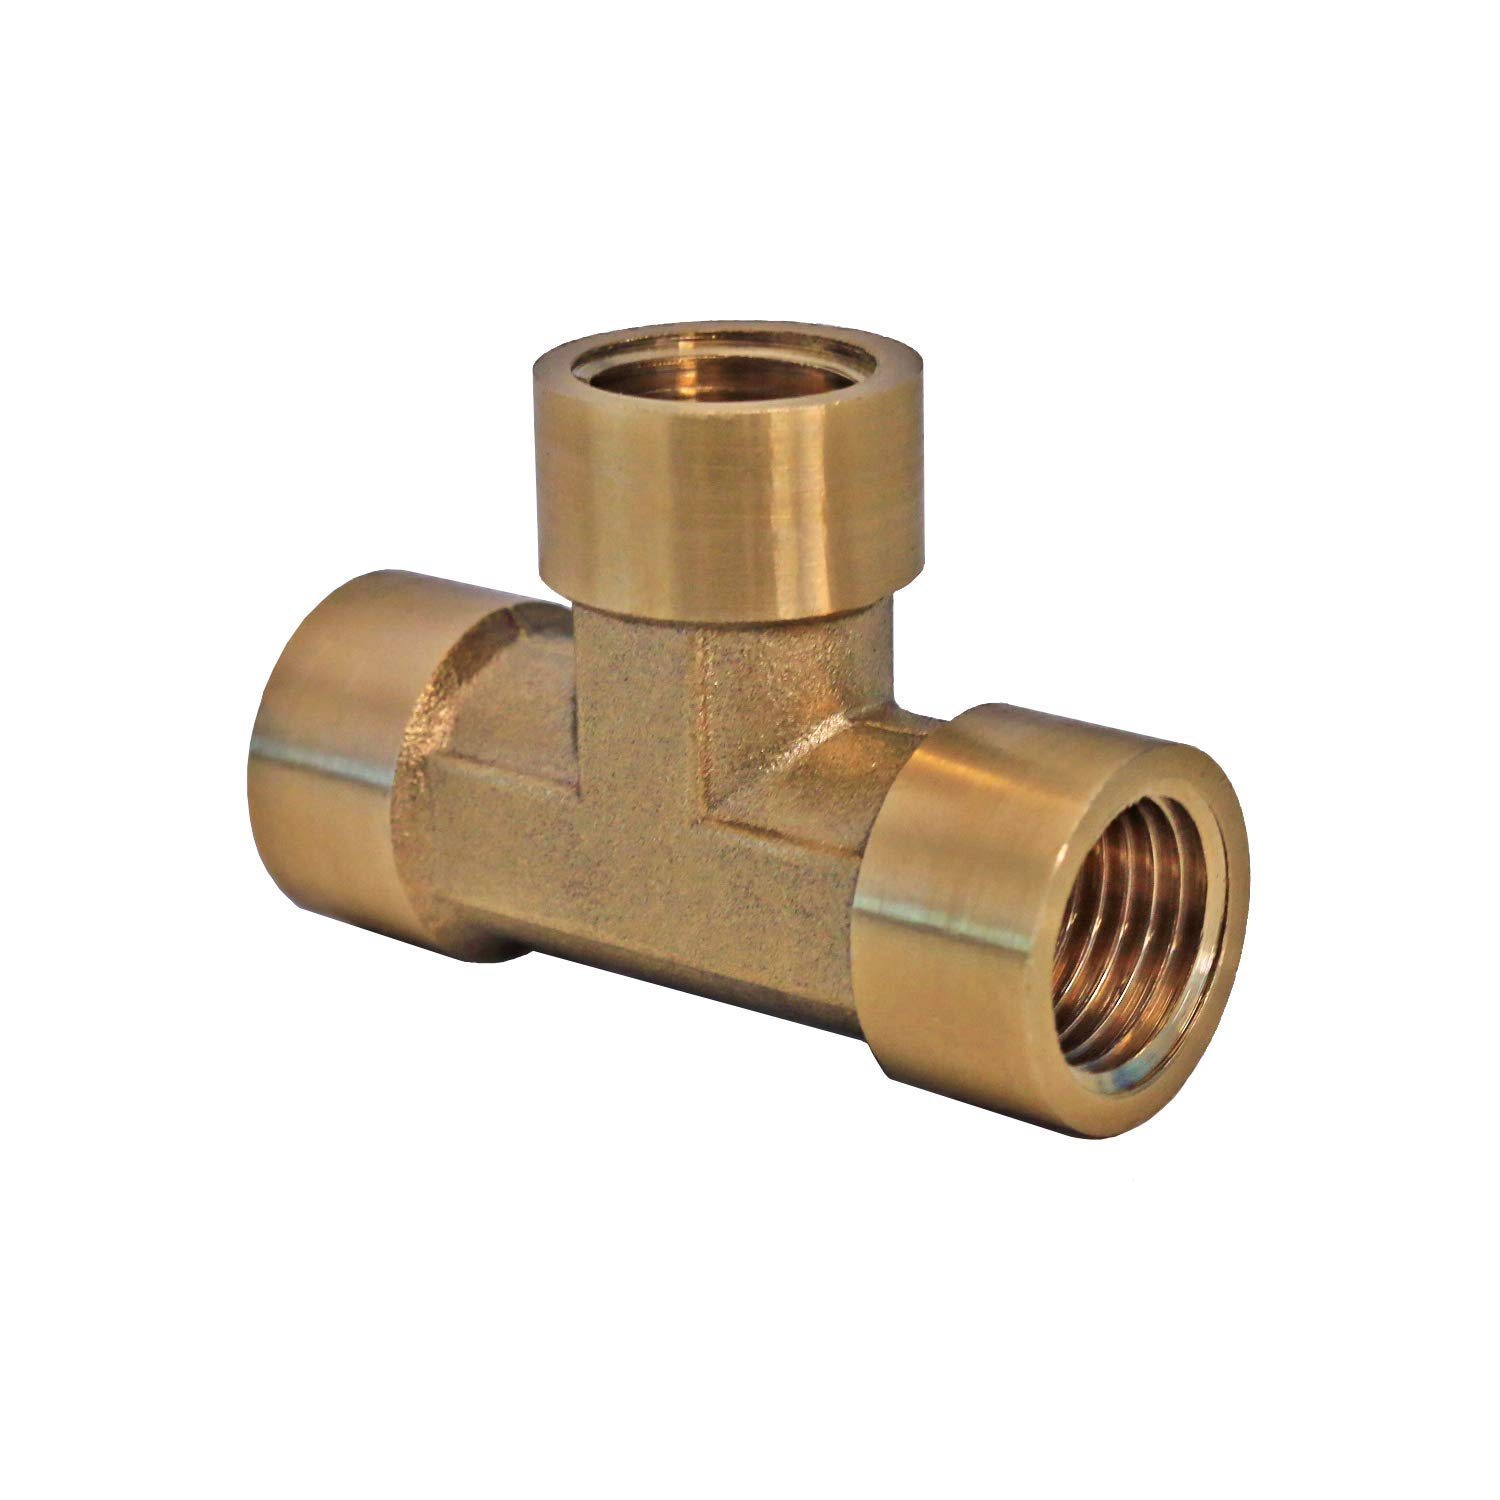 1//4 Brass Tee Fitting NPT T Pipe Fitting 1//4 1//4in x 1//4in x 1//4in Quarter Inch Tee 1//4 NPT Female Pipe T Connector 1//4 Brass T-Valve 1//4 Brass Tee 1//4 NPT Female